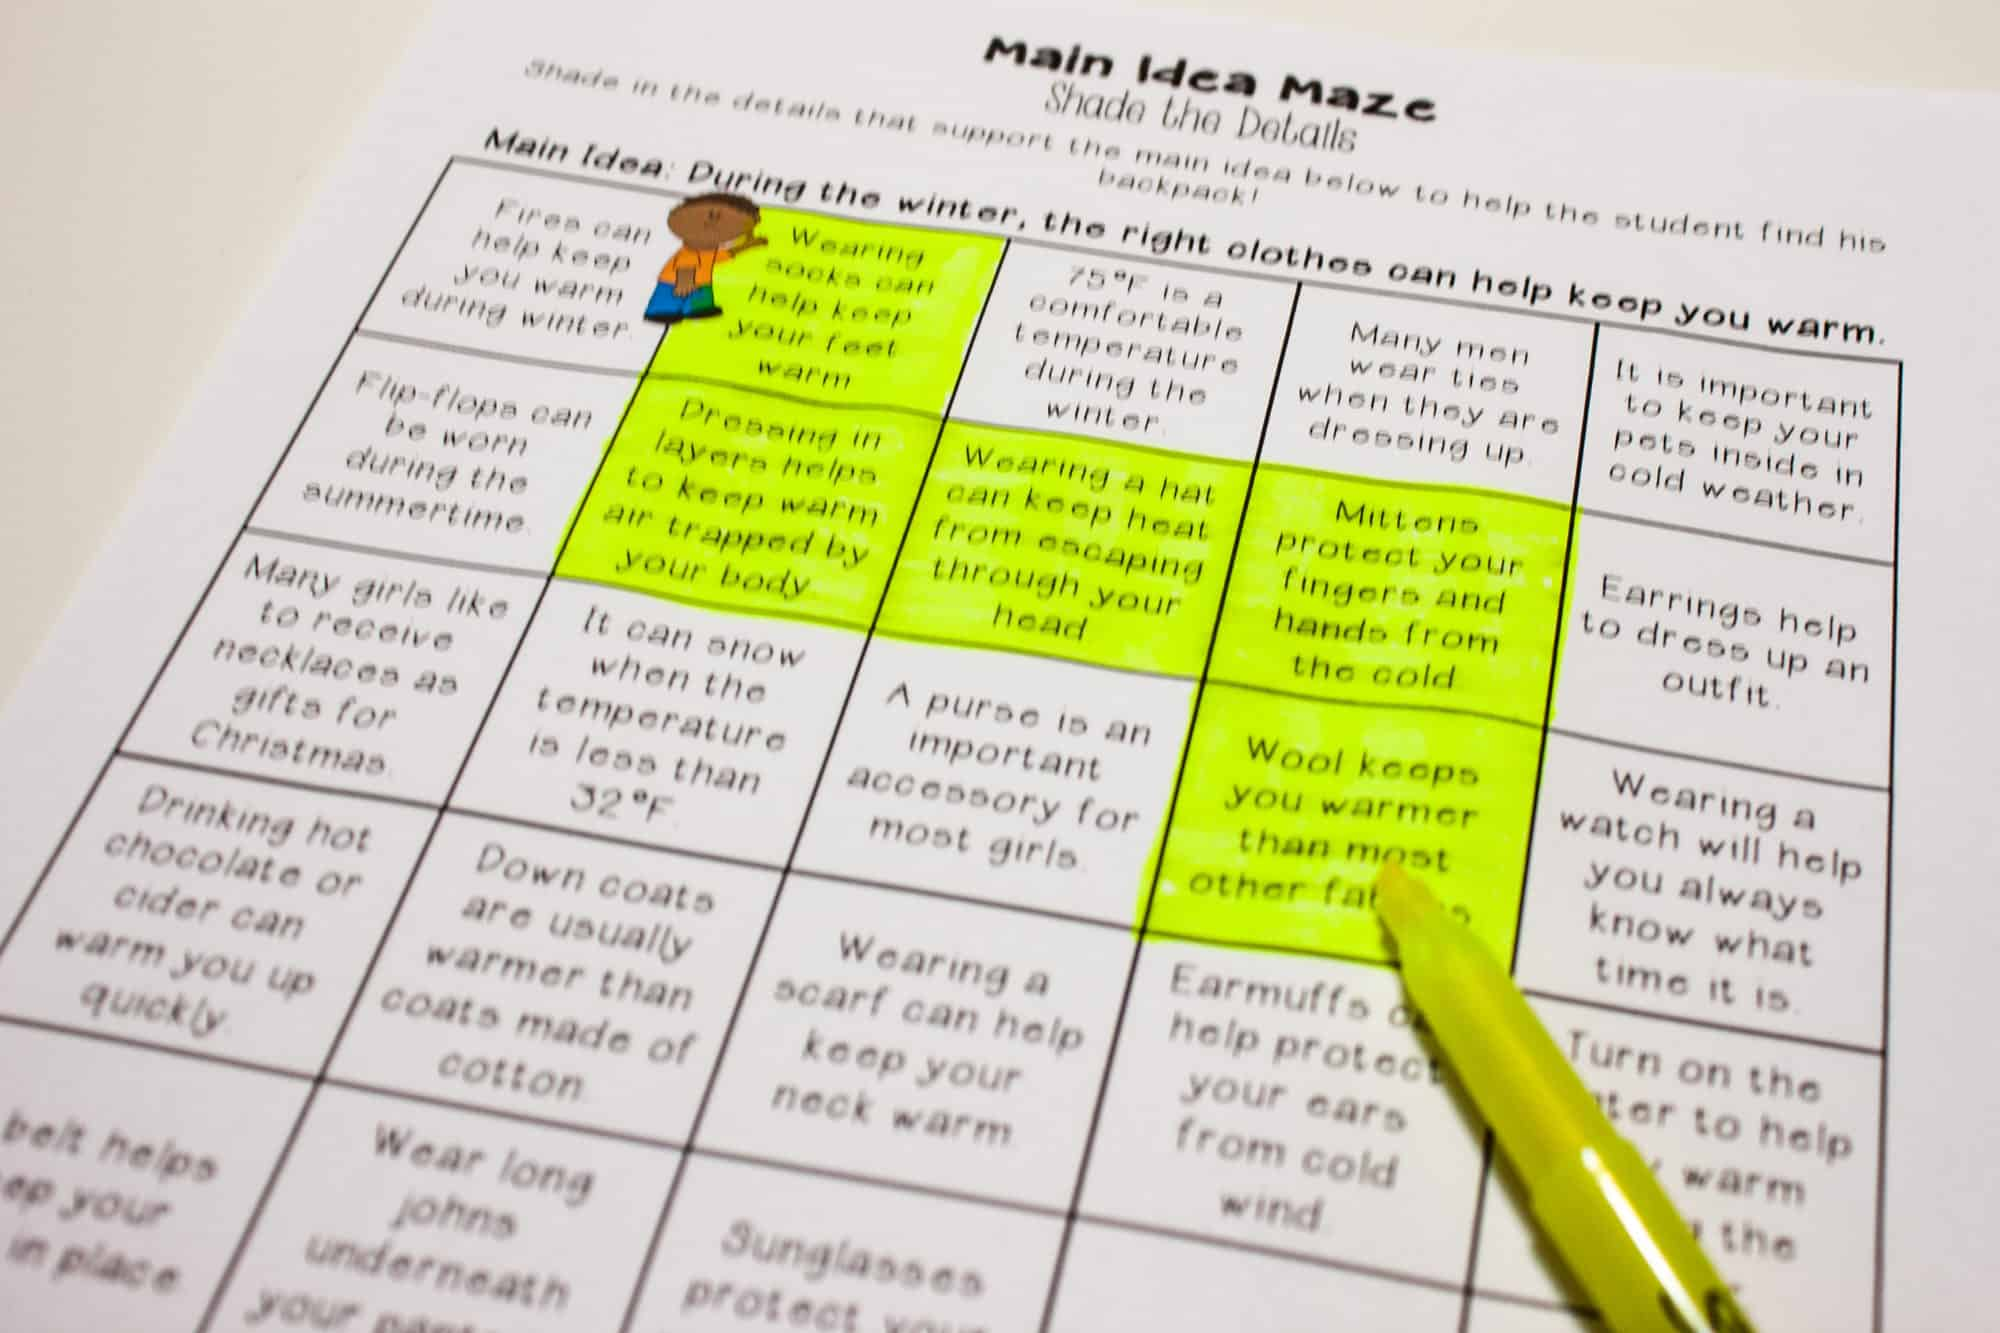 worksheet 3rd Grade Main Idea Worksheets main idea centers for upper elementary teaching made practical 3rd grade and supporting details center students are given a idea